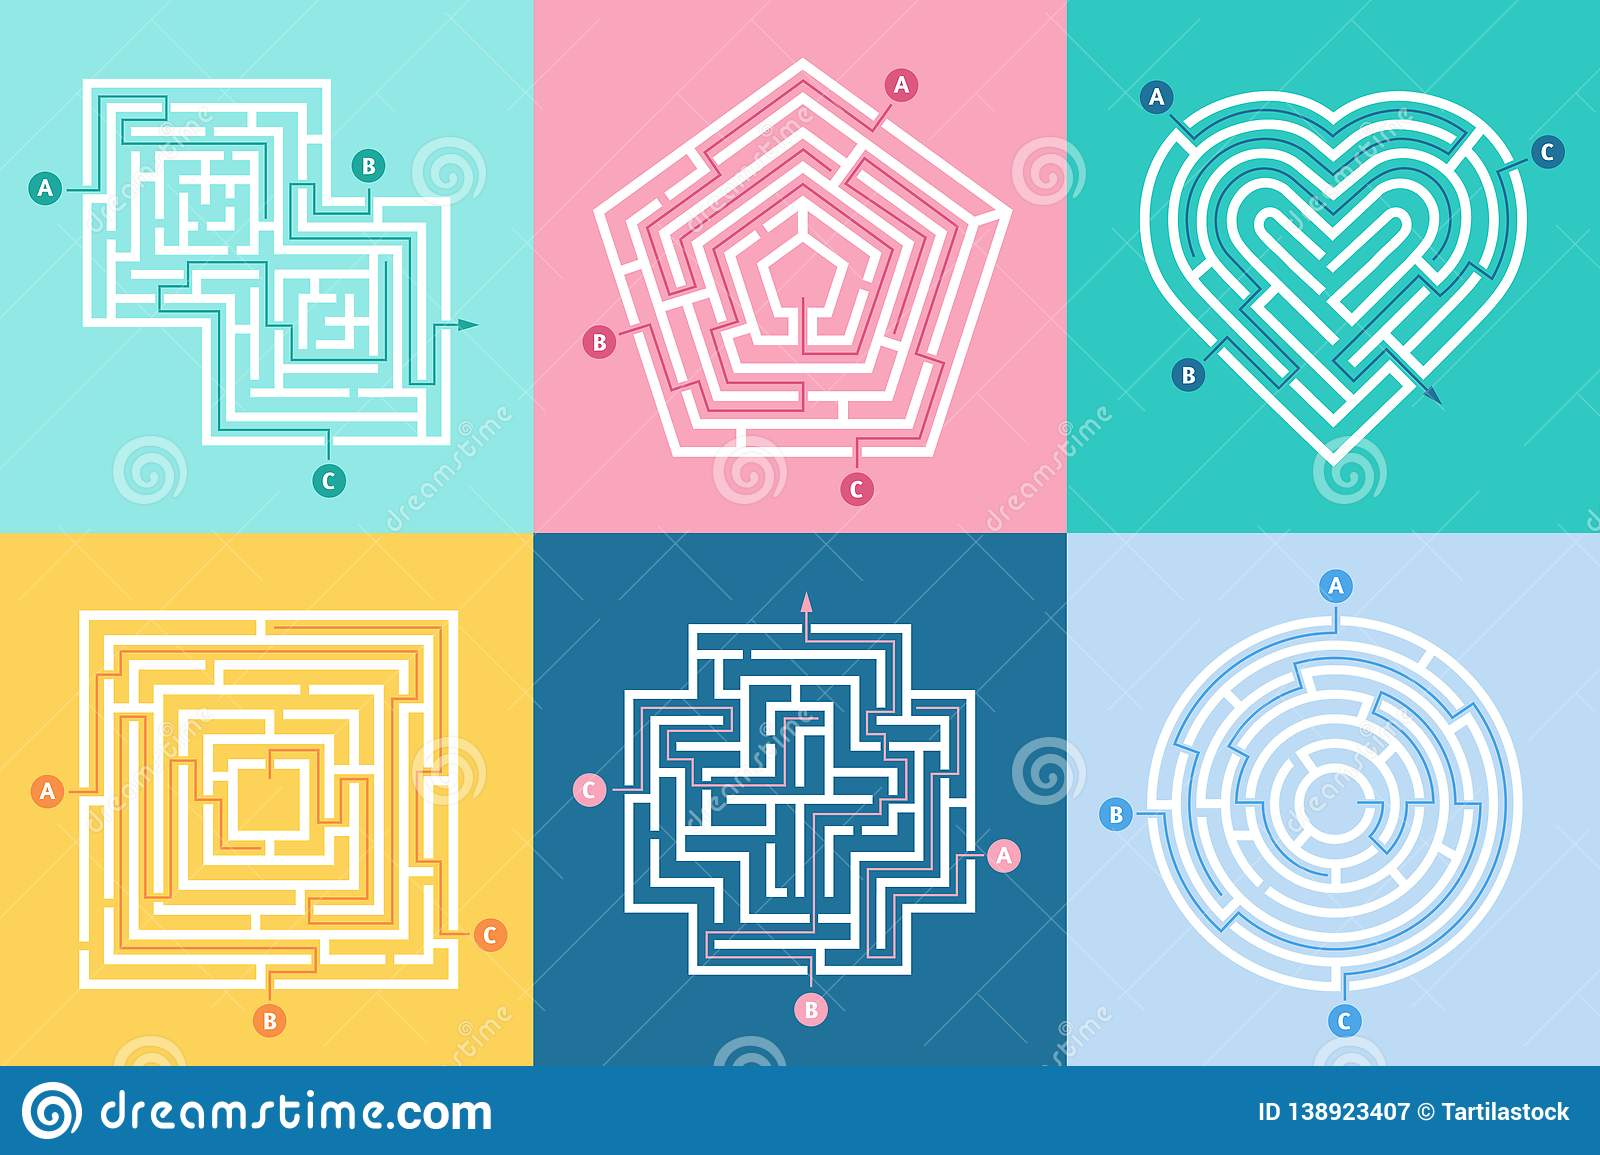 Maze entrance. Find right way, kids labyrinth game and choice mazes entrances letters vector illustration set